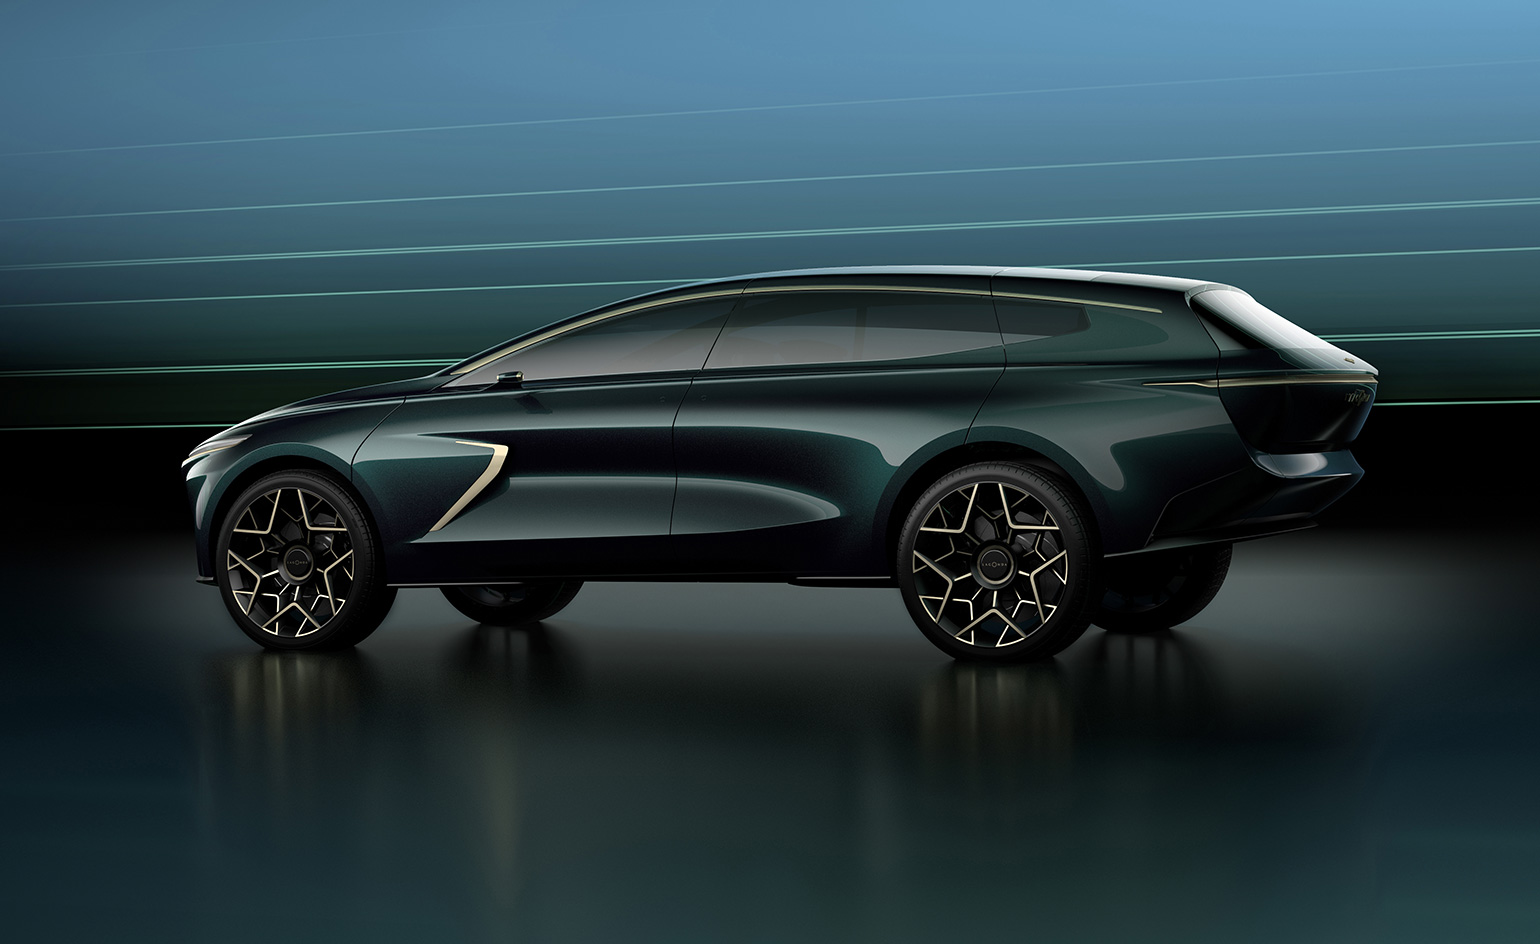 Concept Cars Unveiled At Geneva Motor Show 2019 Wallpaper